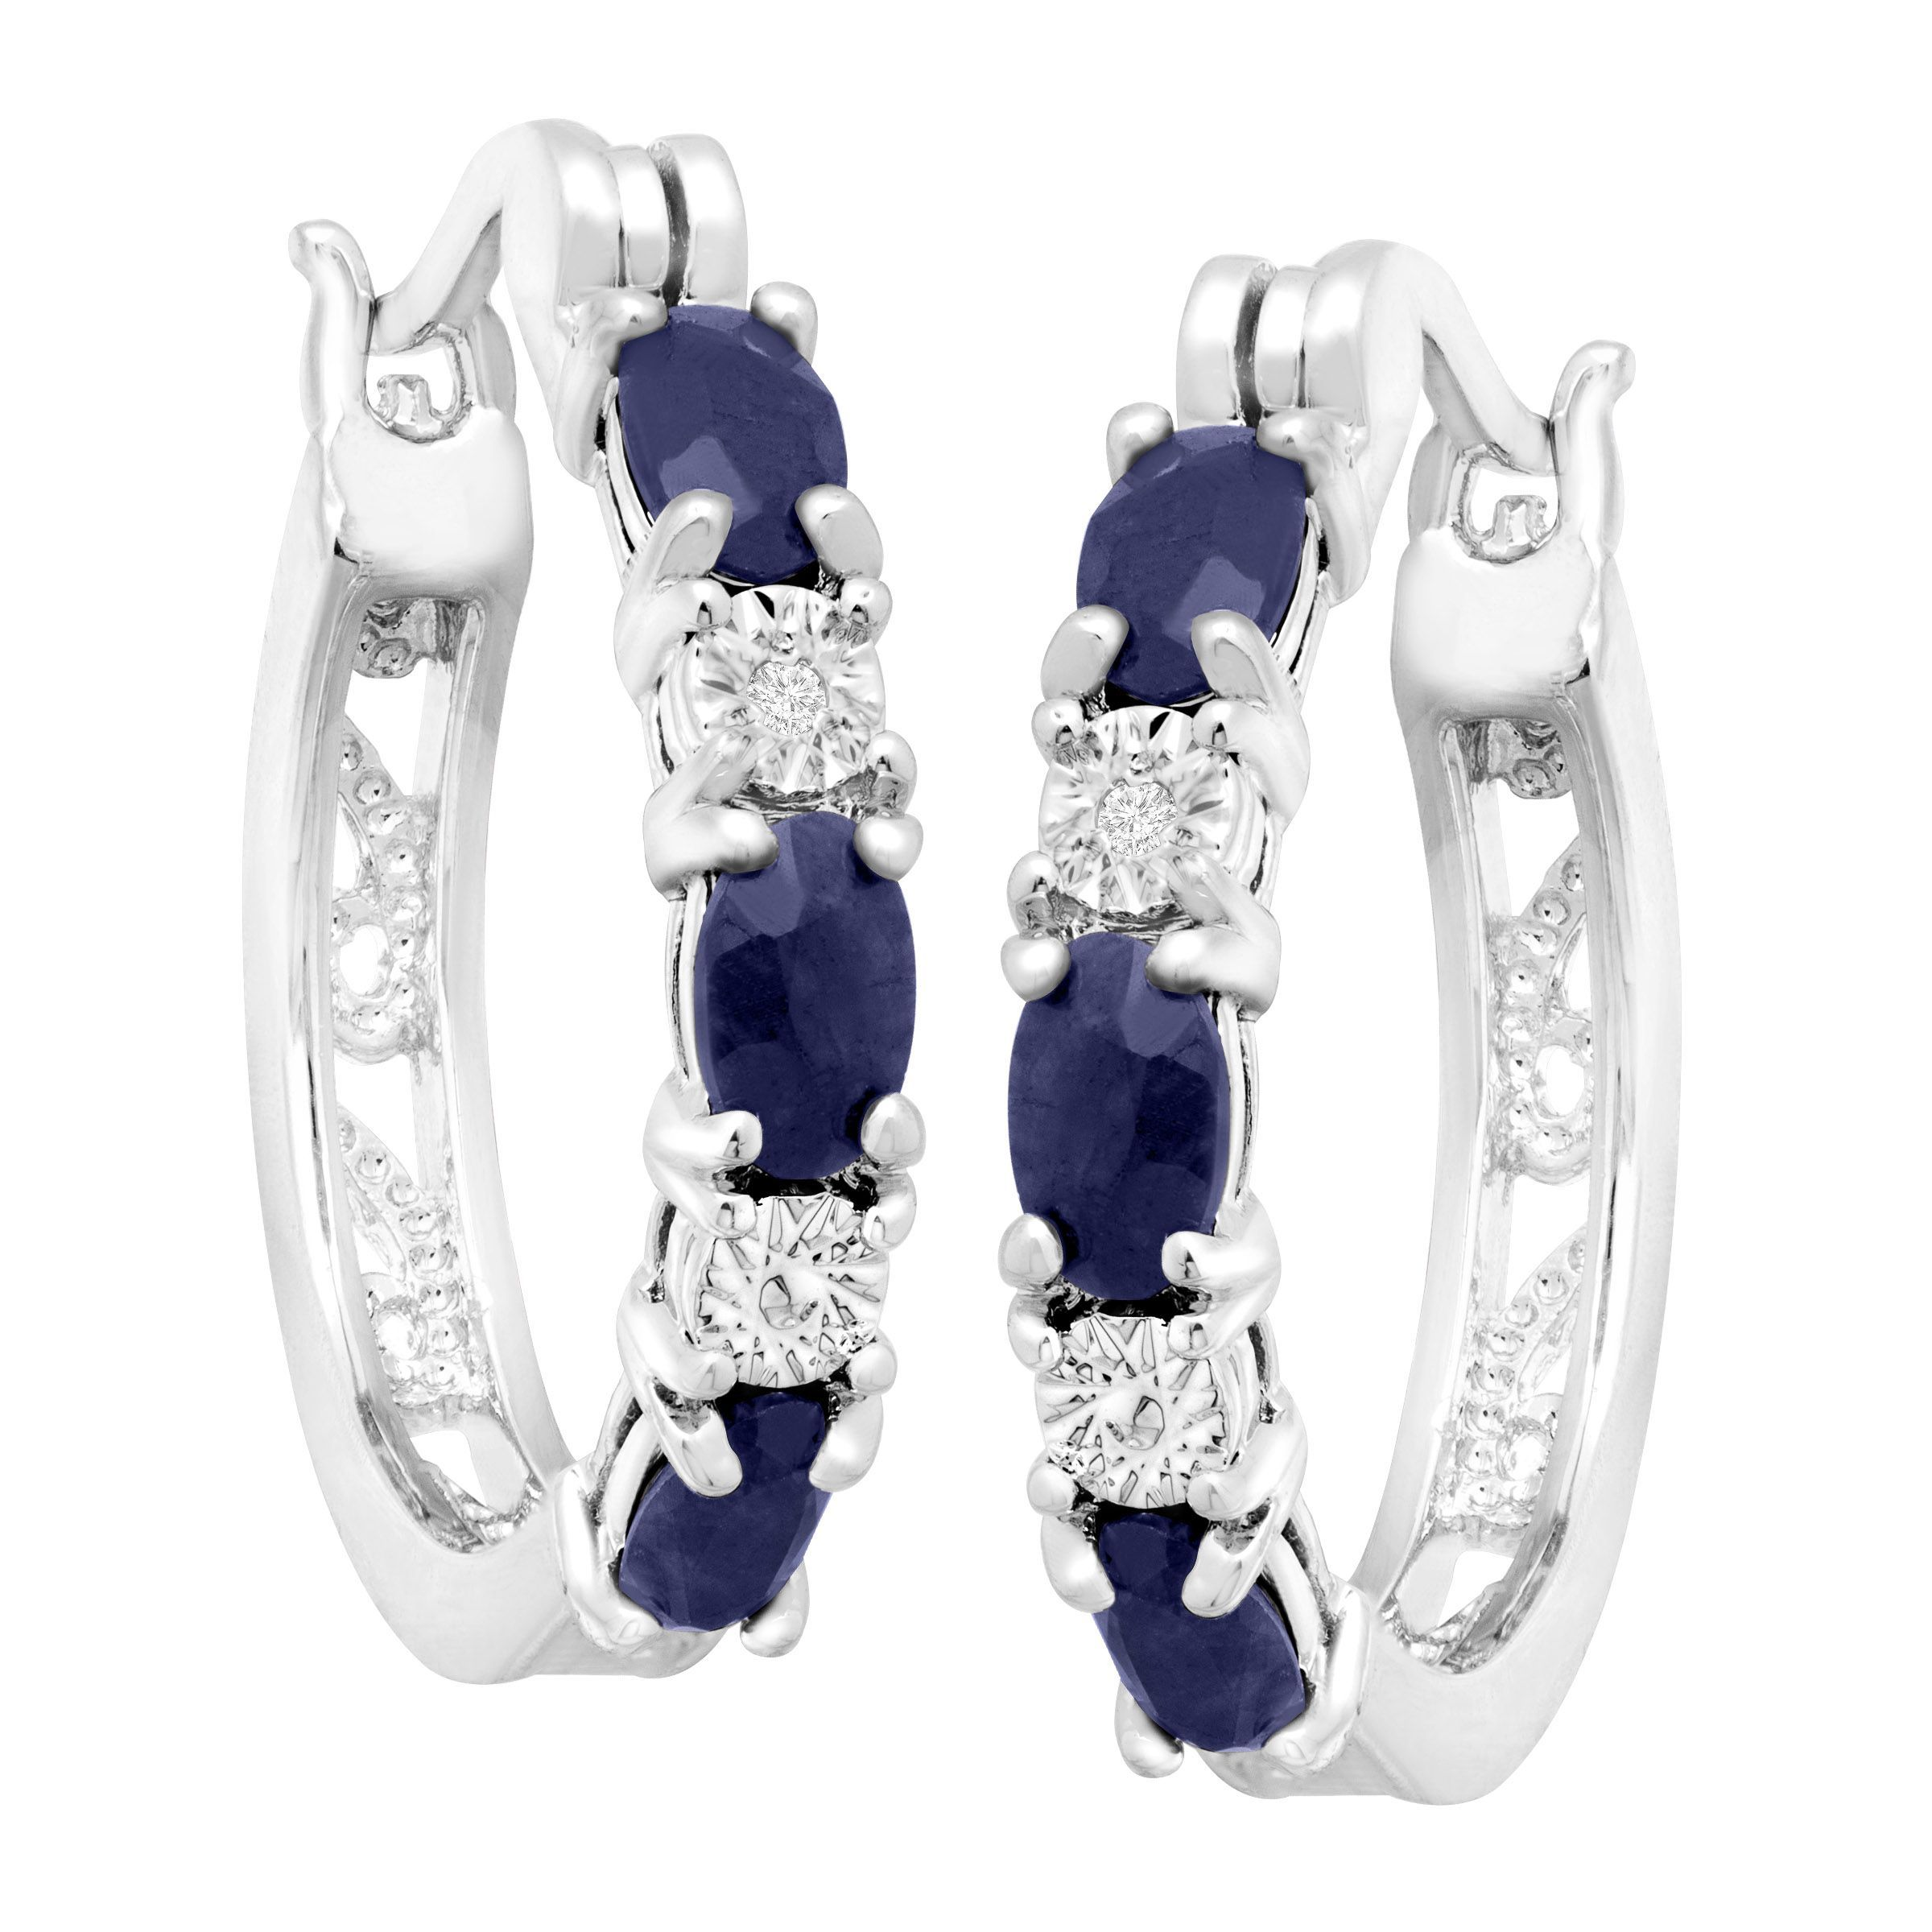 2 1 10 ct Natural Sapphire Hoop Earrings with Diamonds in Platinum